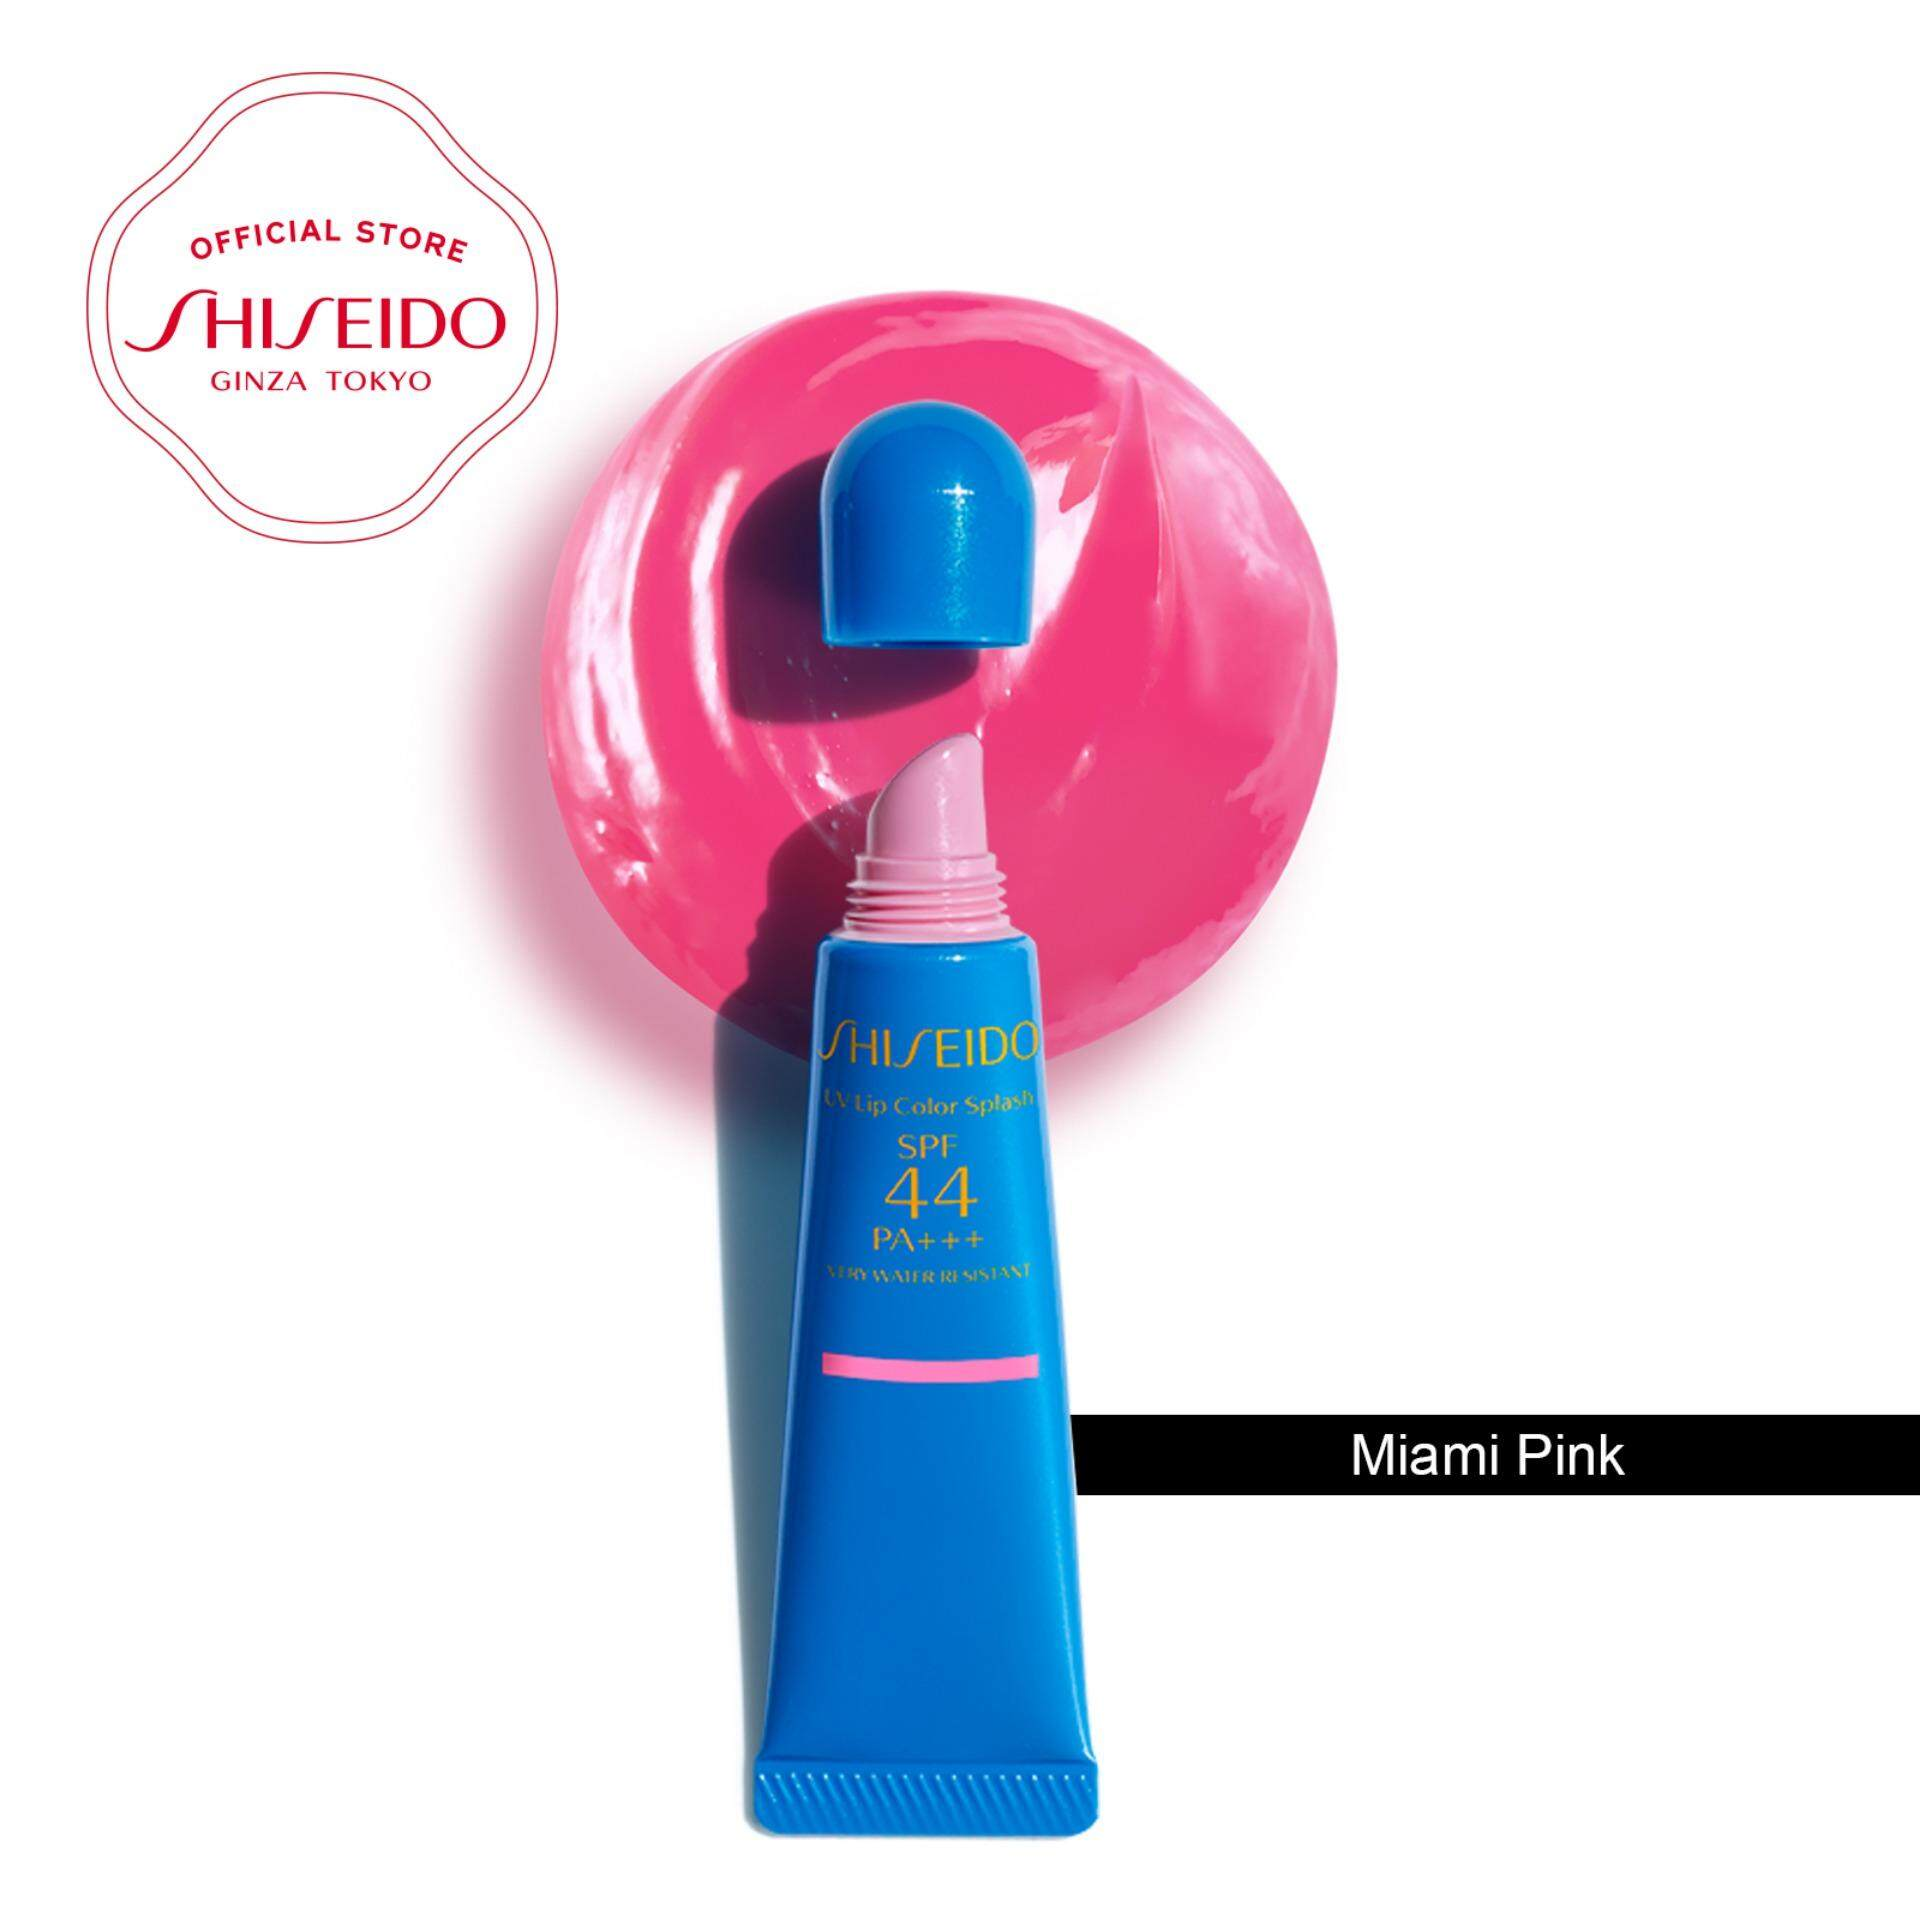 SHISEIDO UV LIP COLOR SPLASH  SPF 42 PA+++ 10 ml.